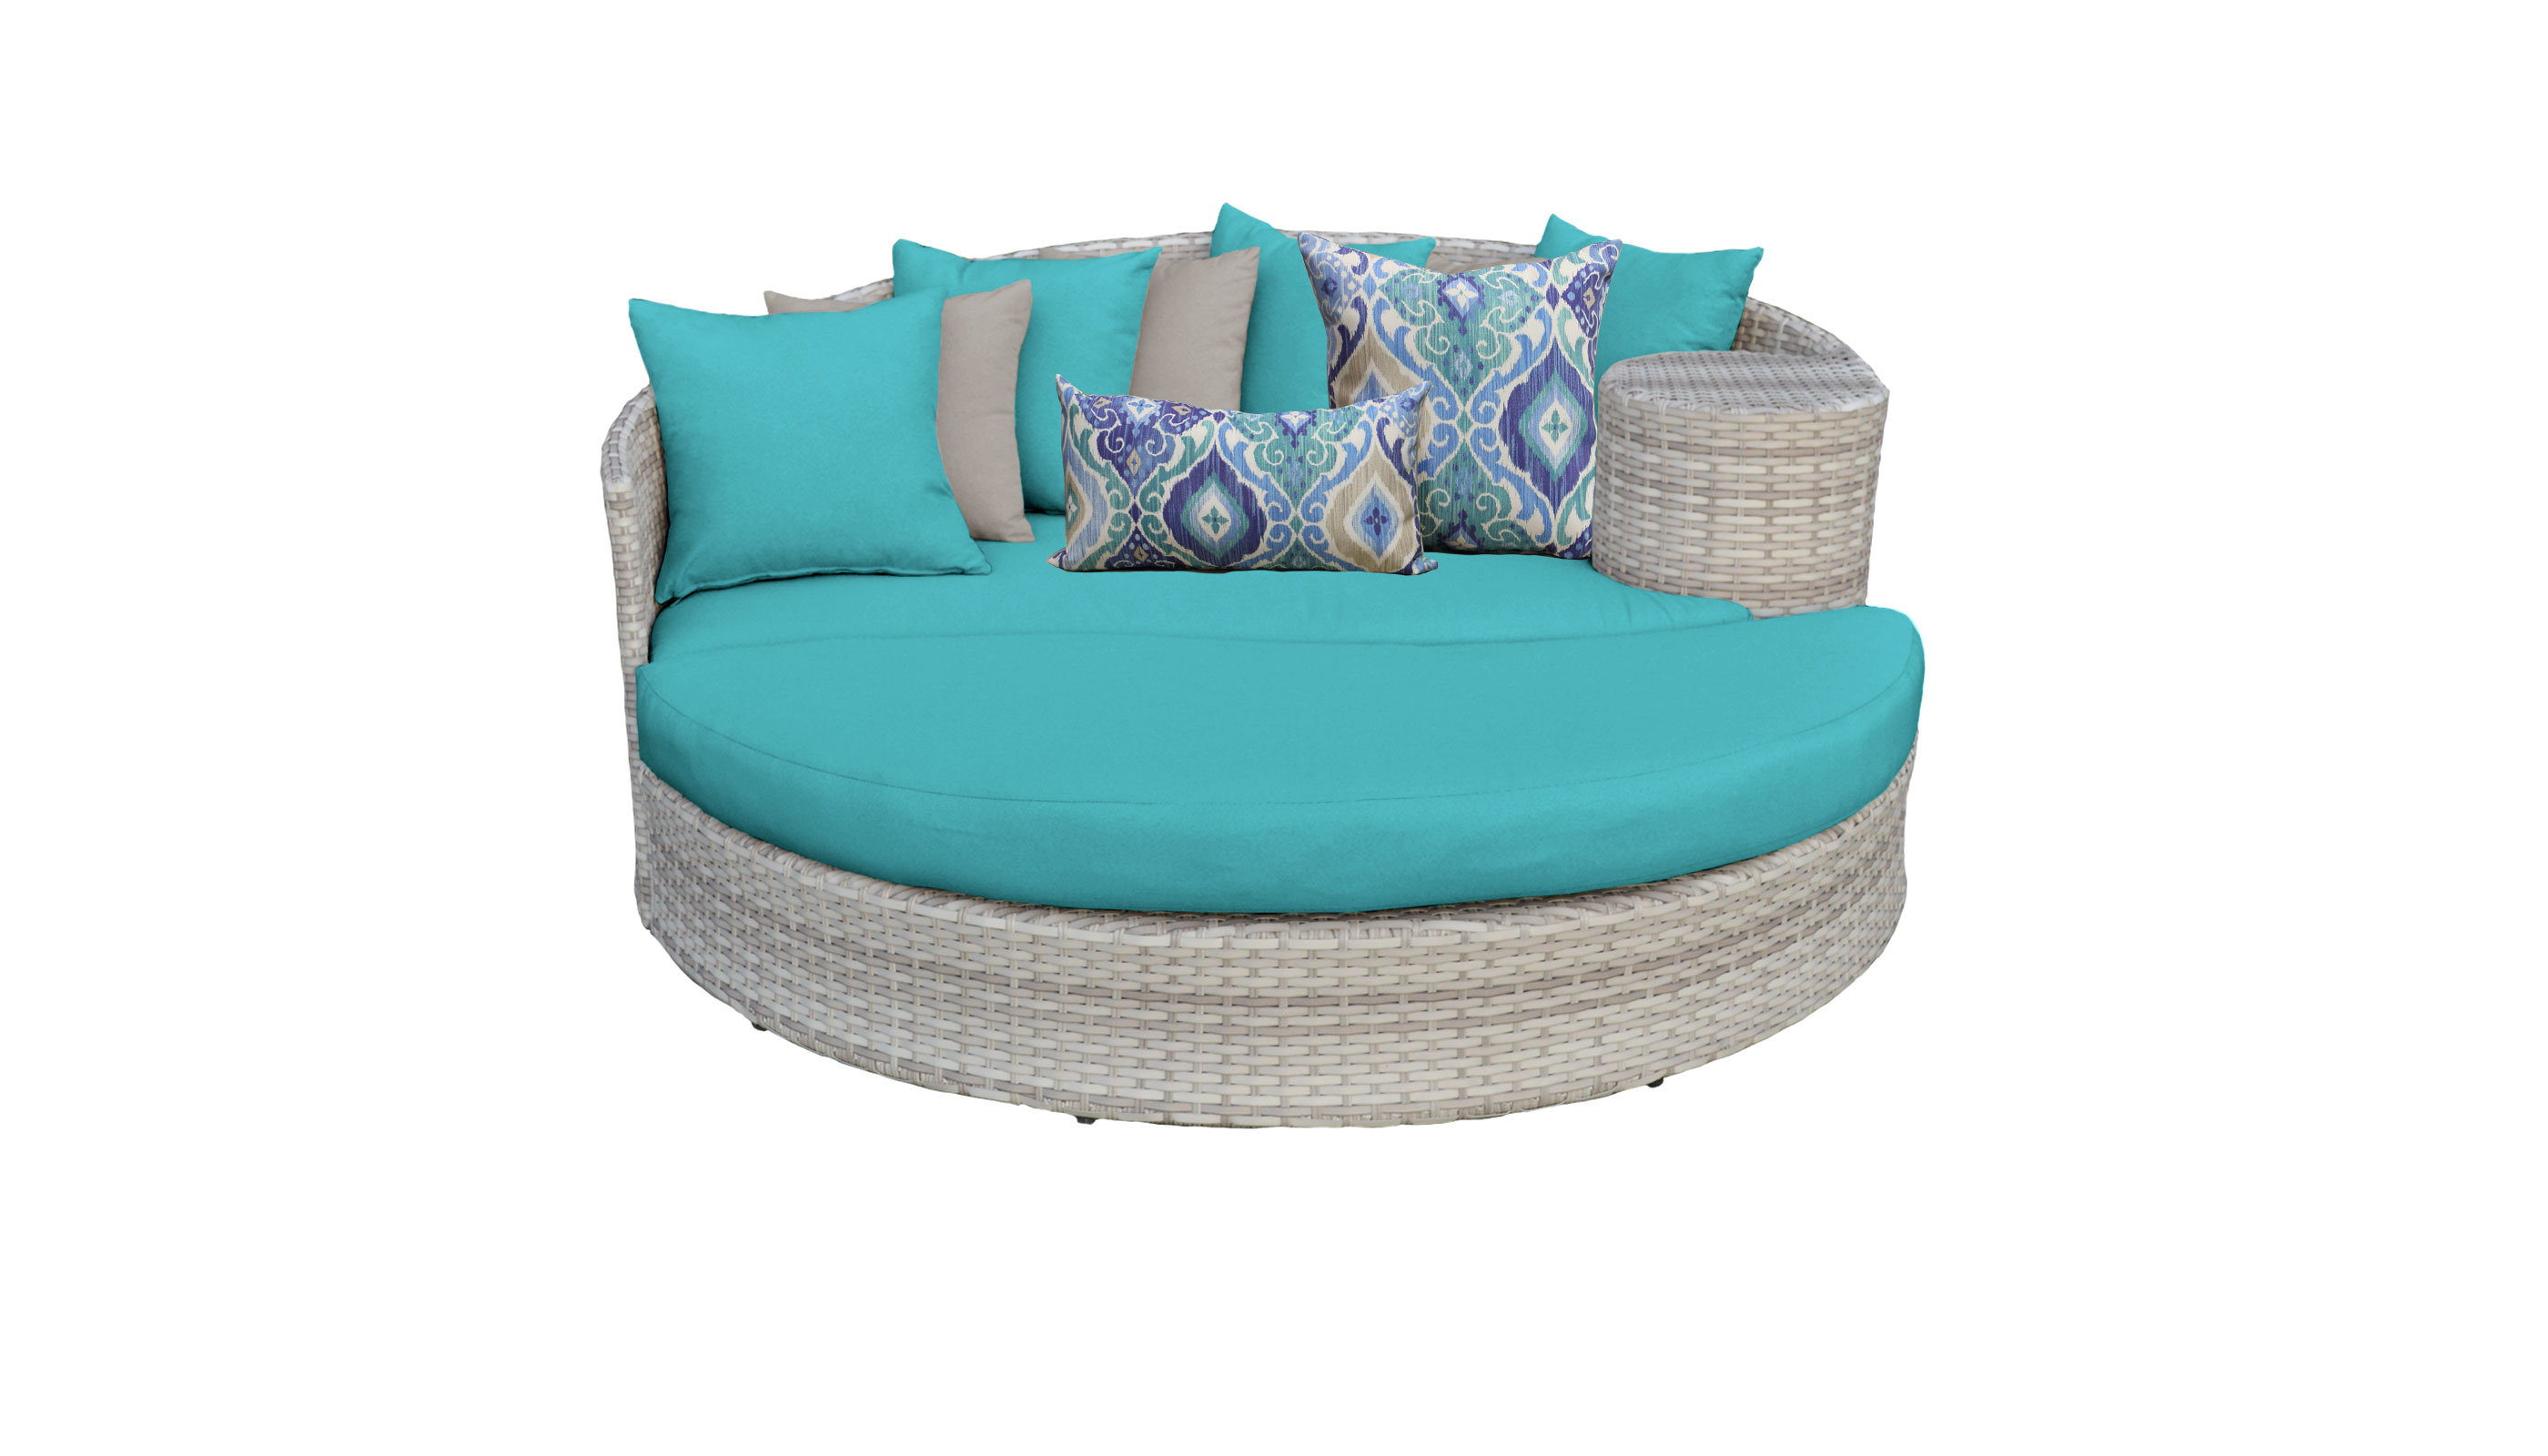 Preferred Falmouth Patio Daybeds With Cushions With Falmouth Patio Daybed With Cushions (View 13 of 20)